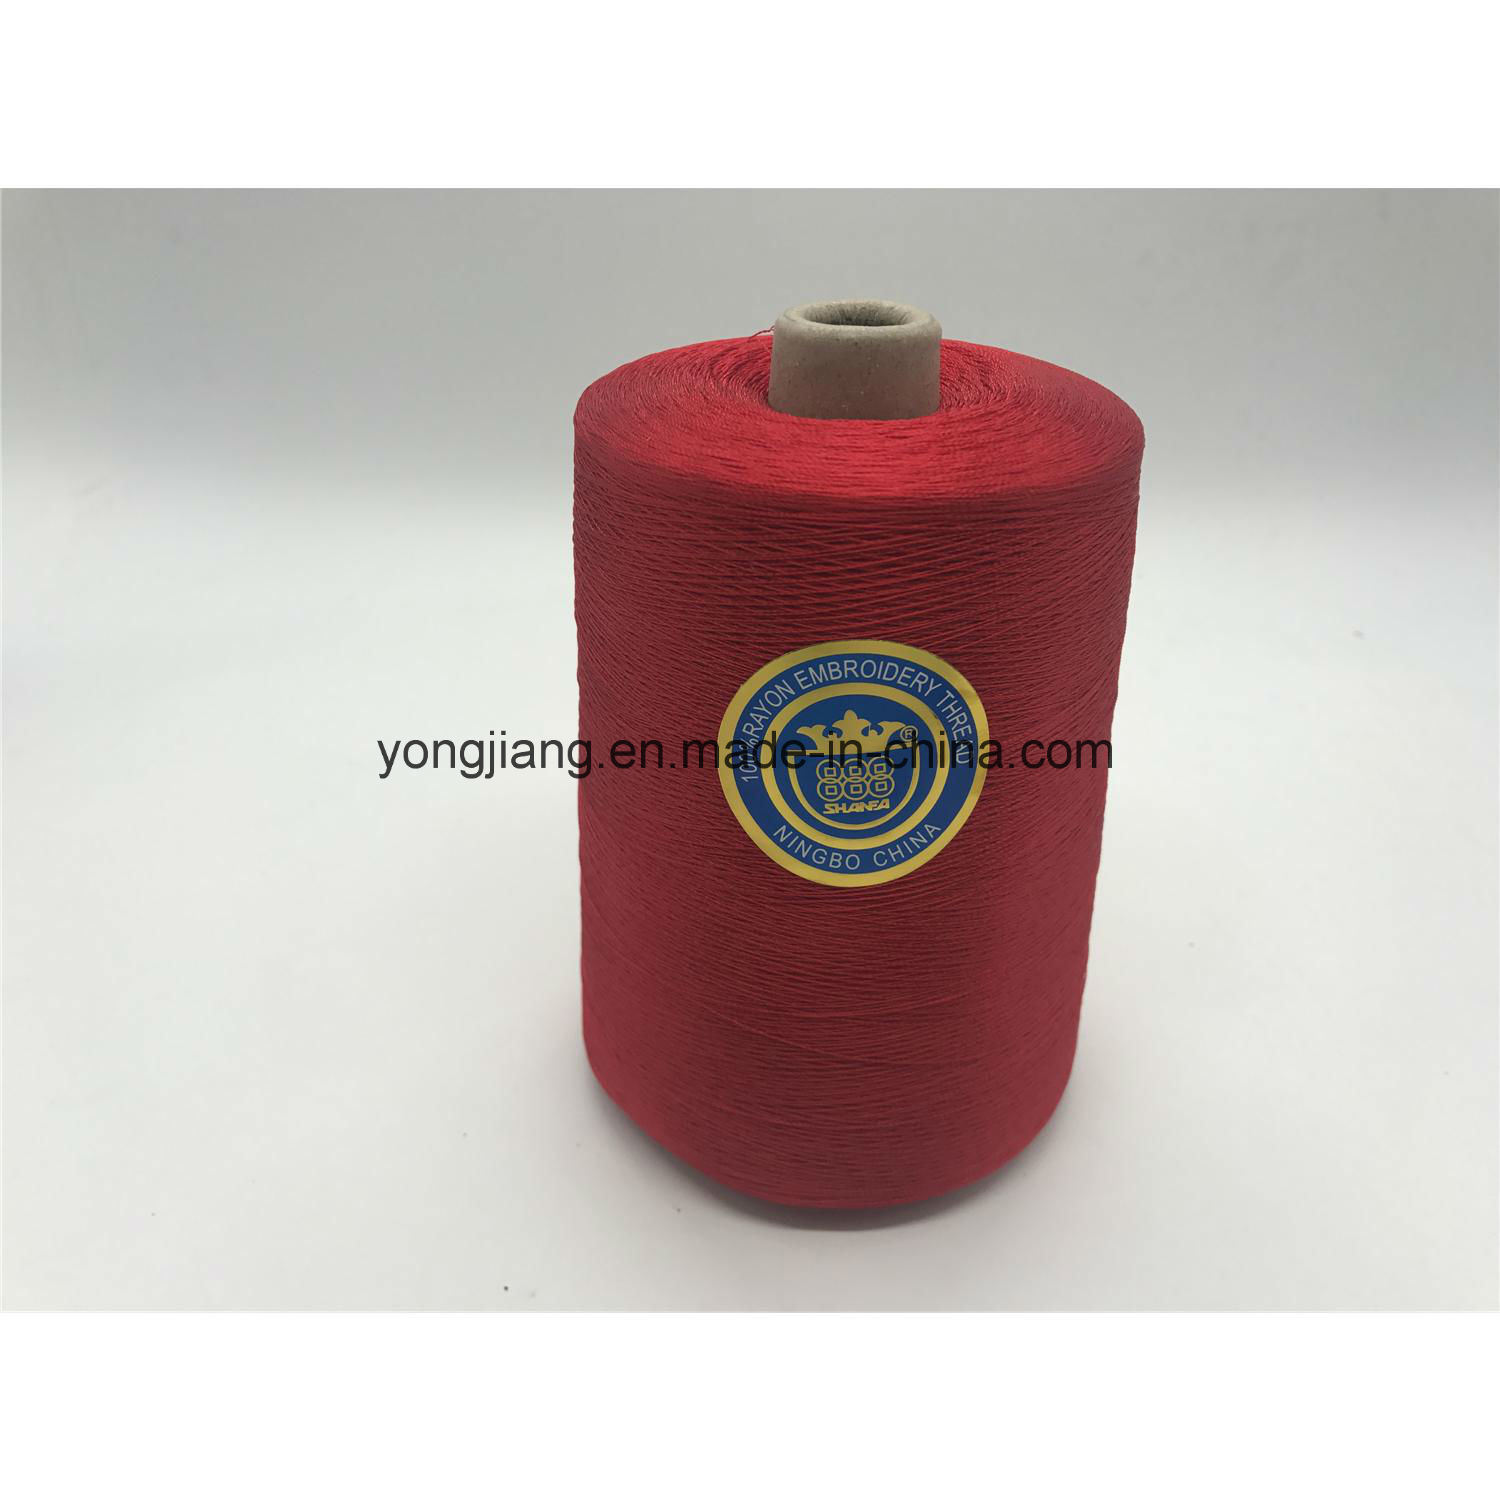 100% Viscose Embroidery Thread 120d/2 1kg